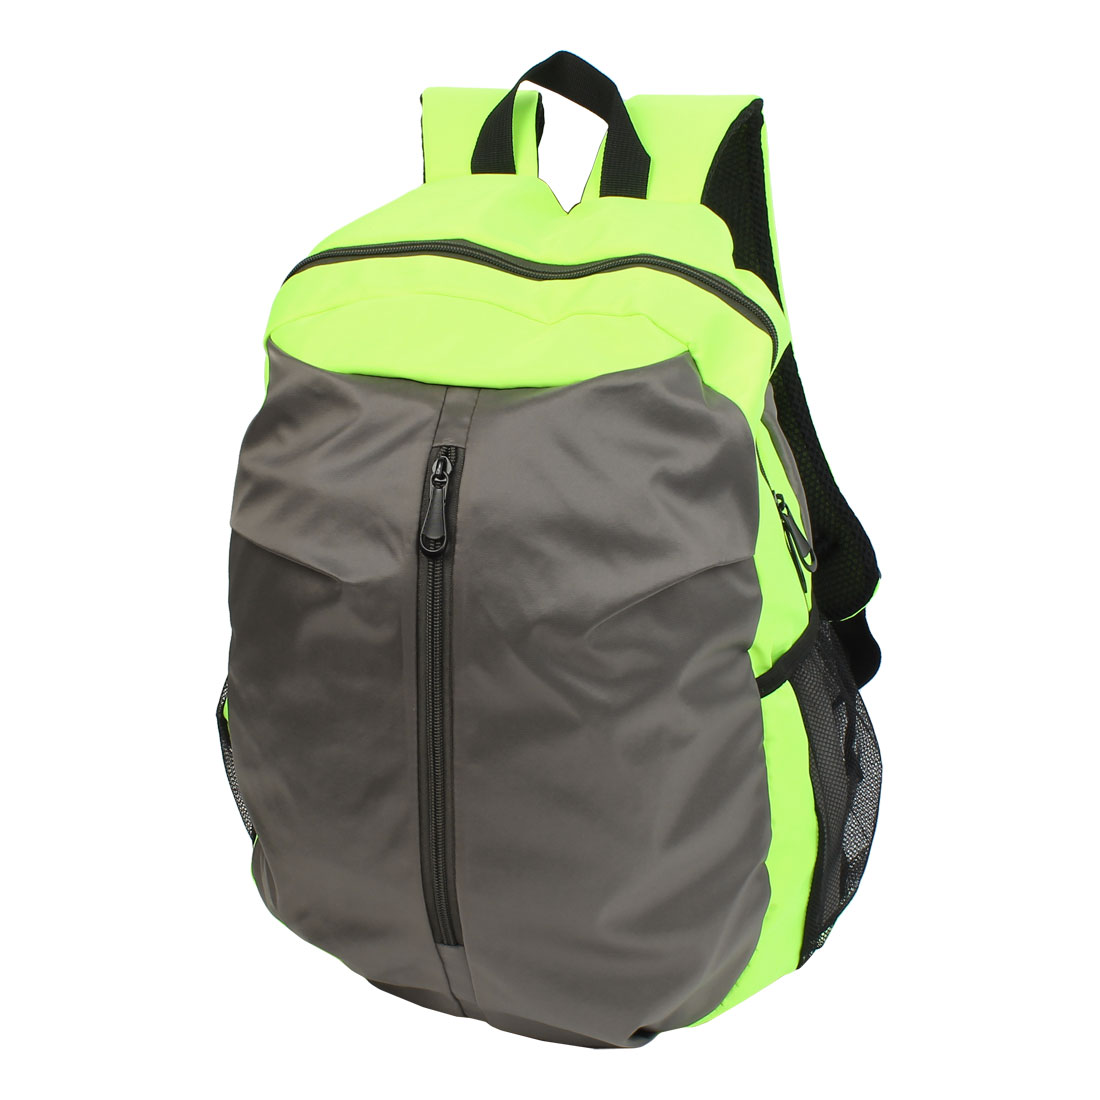 Adjustable Double Shoulder Strap Zip Closure Backpack Shoolbag Yellow Green Gray